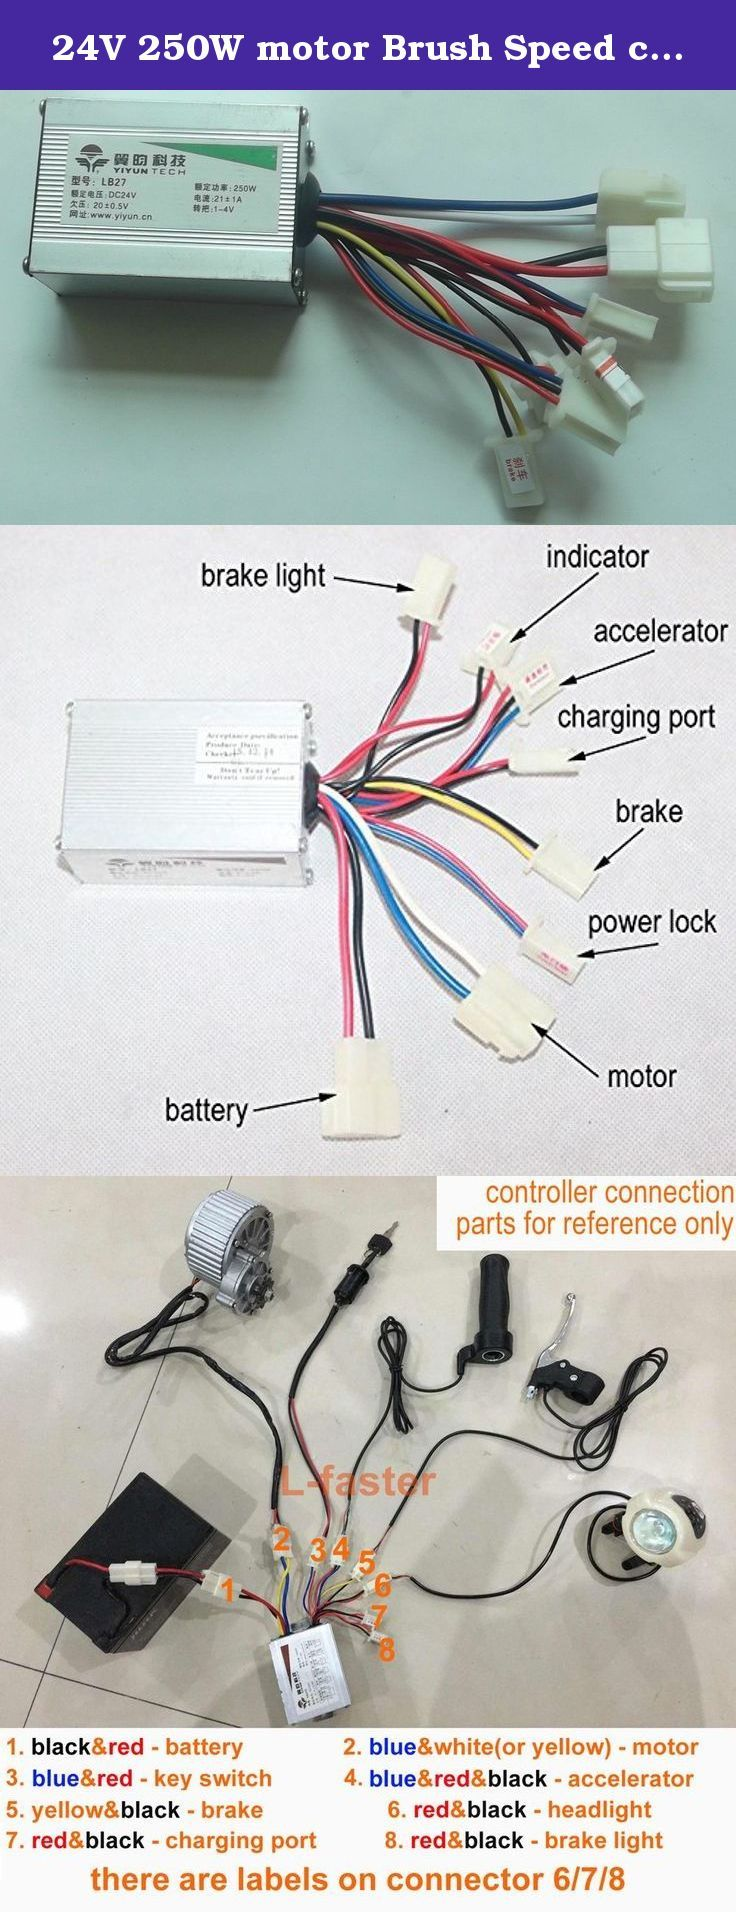 hight resolution of  9cb80219f9d0f2c4e4c59bb2df6f9e9f 24v 250w motor brush speed controller for electric bike bicycle 24 volt scooter wire diagram